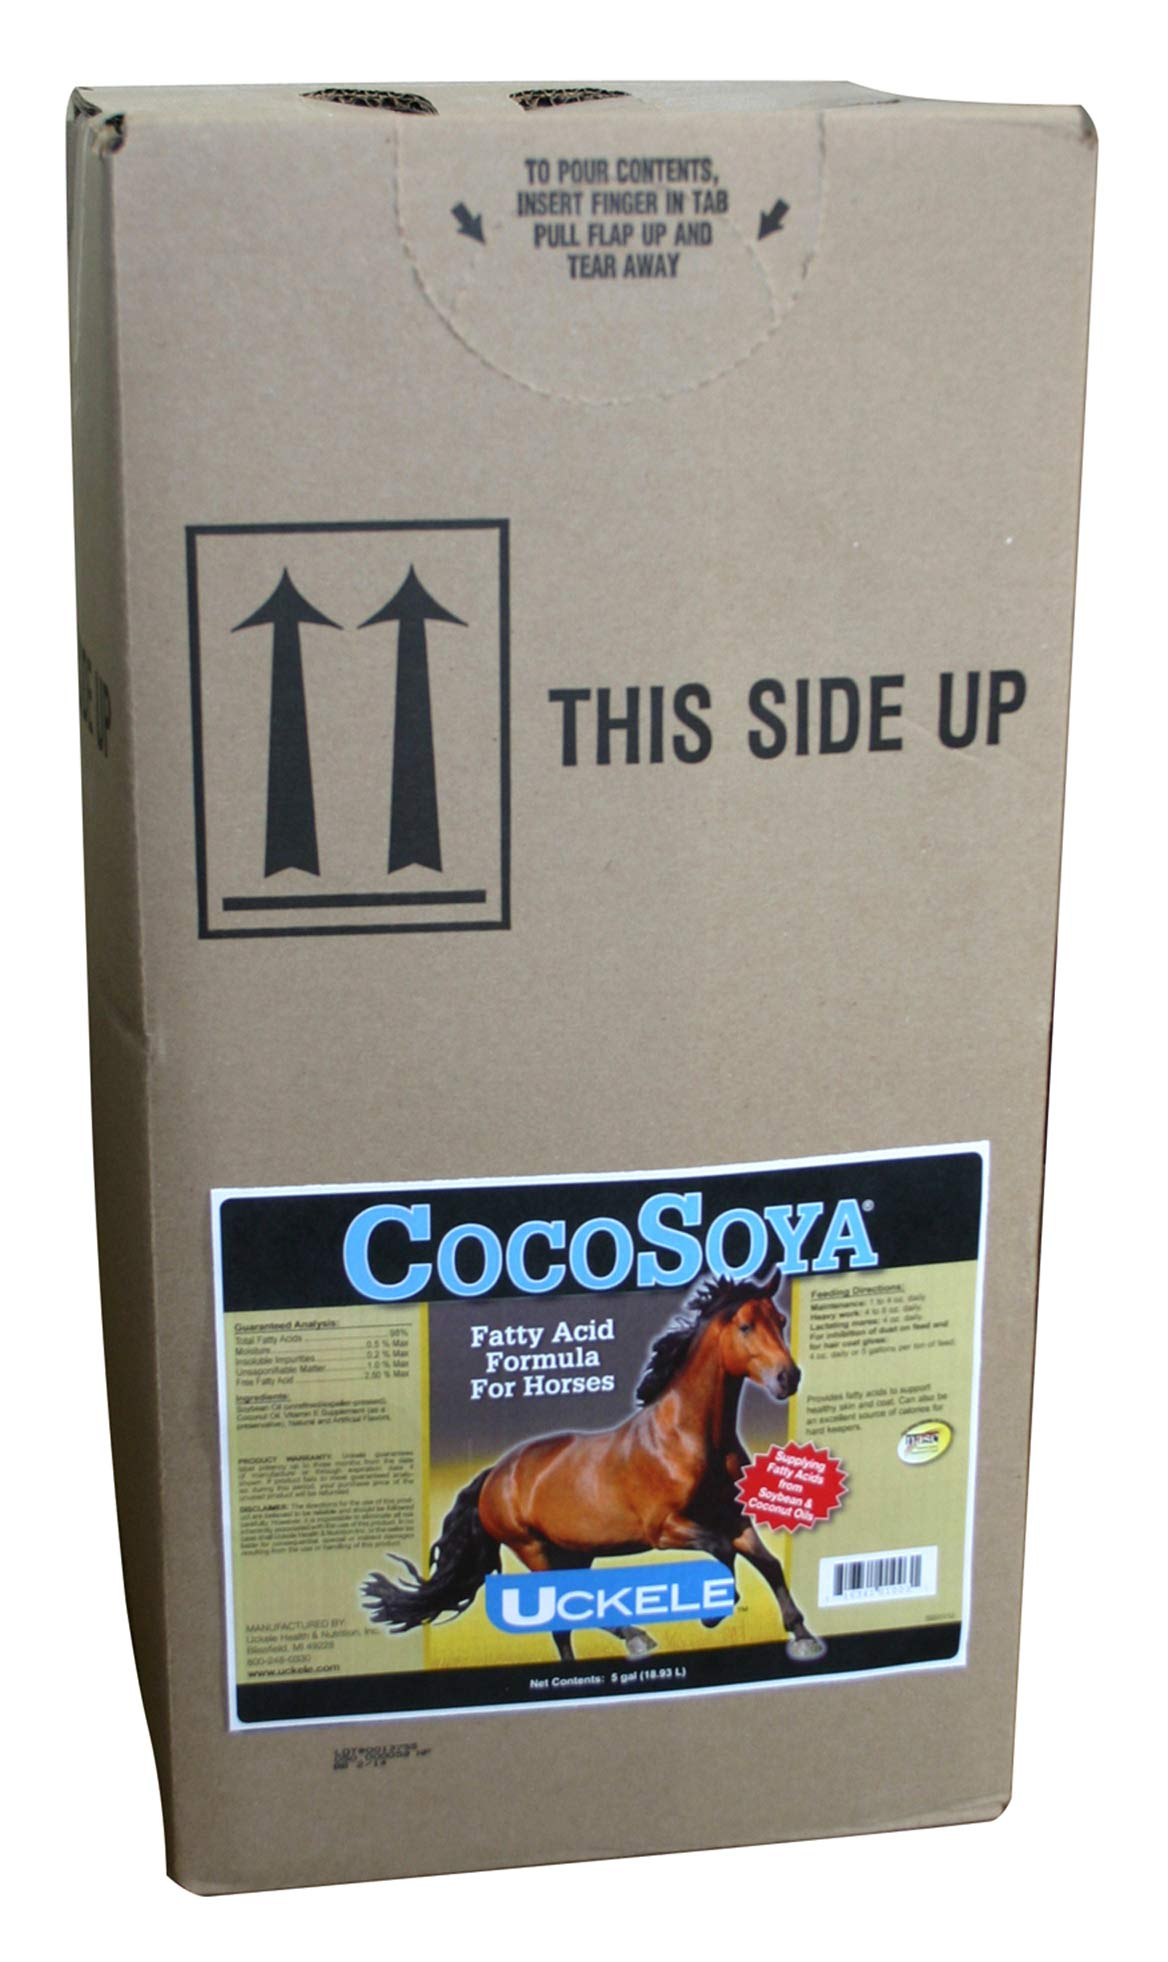 Uckele Cocosoya Oil 640oz 5 Gallon by Uckele